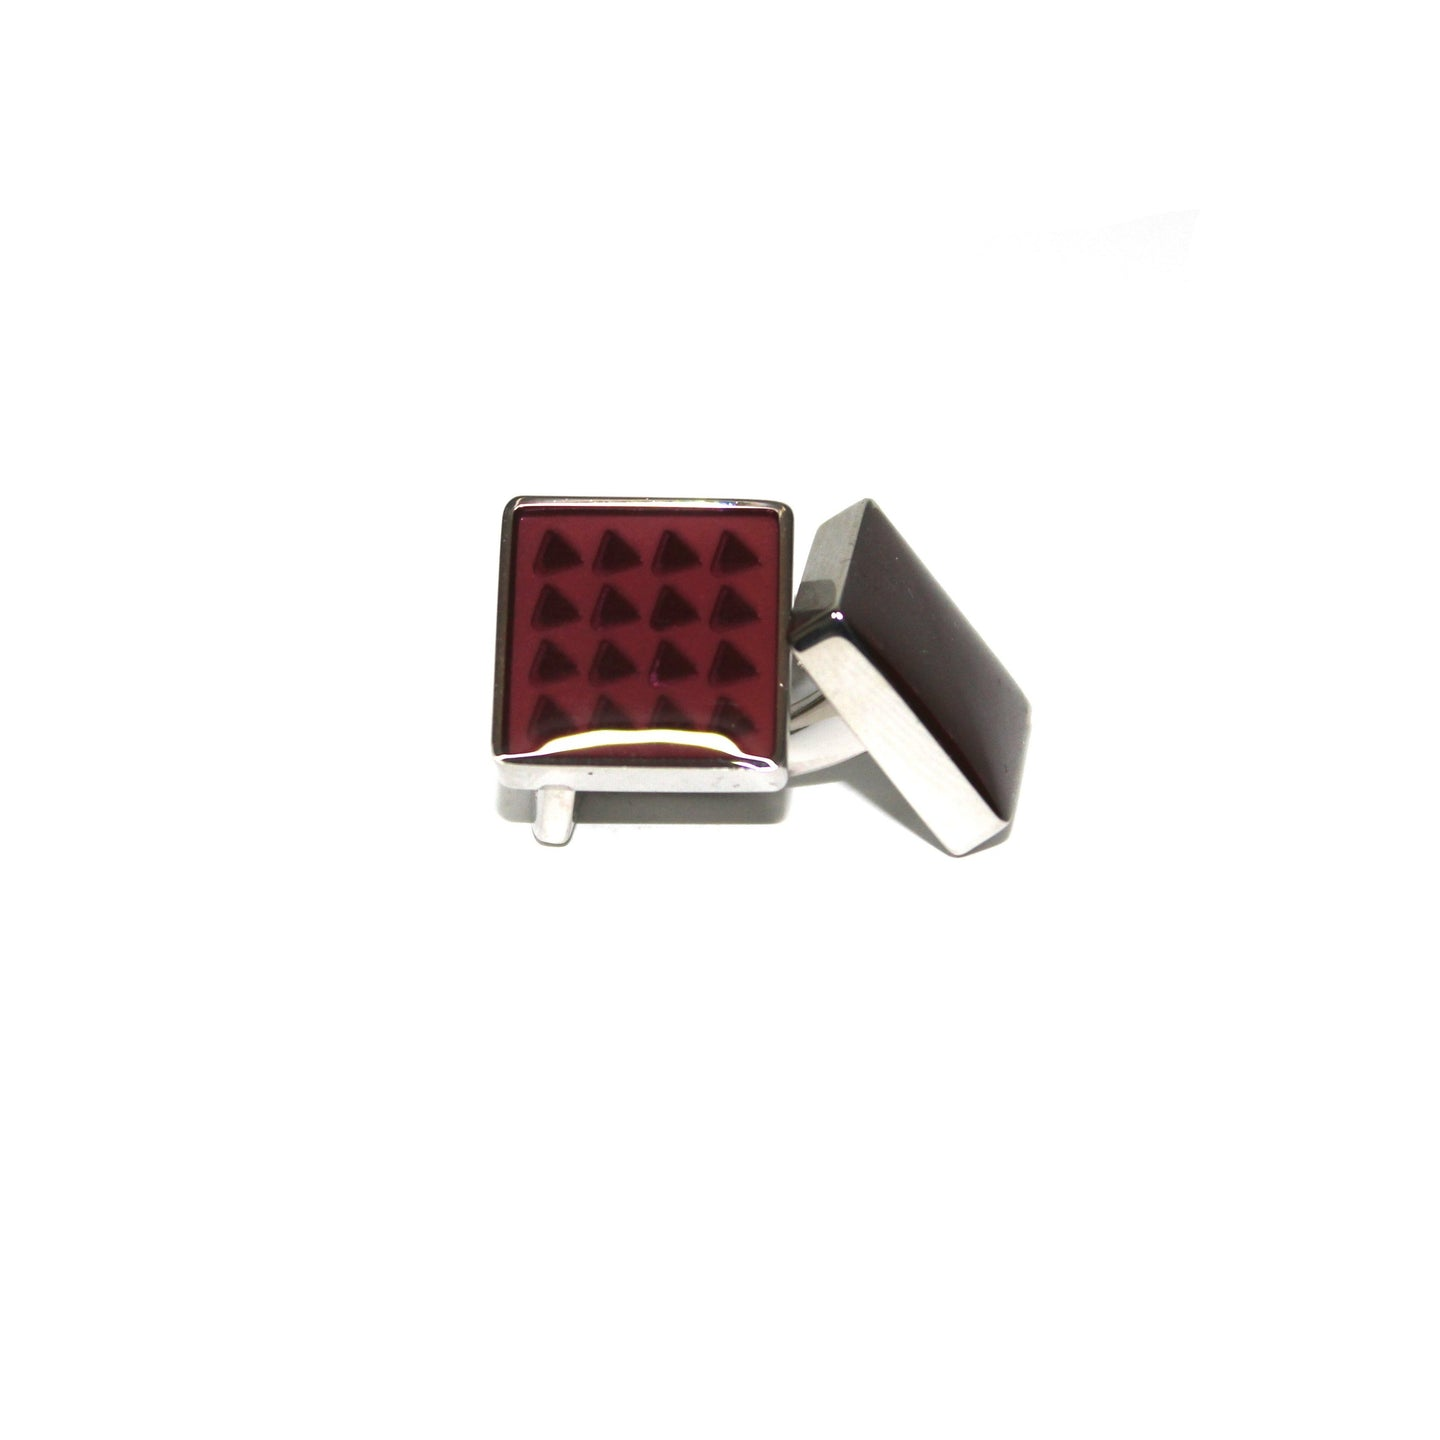 Hugo Boss, Cufflinks